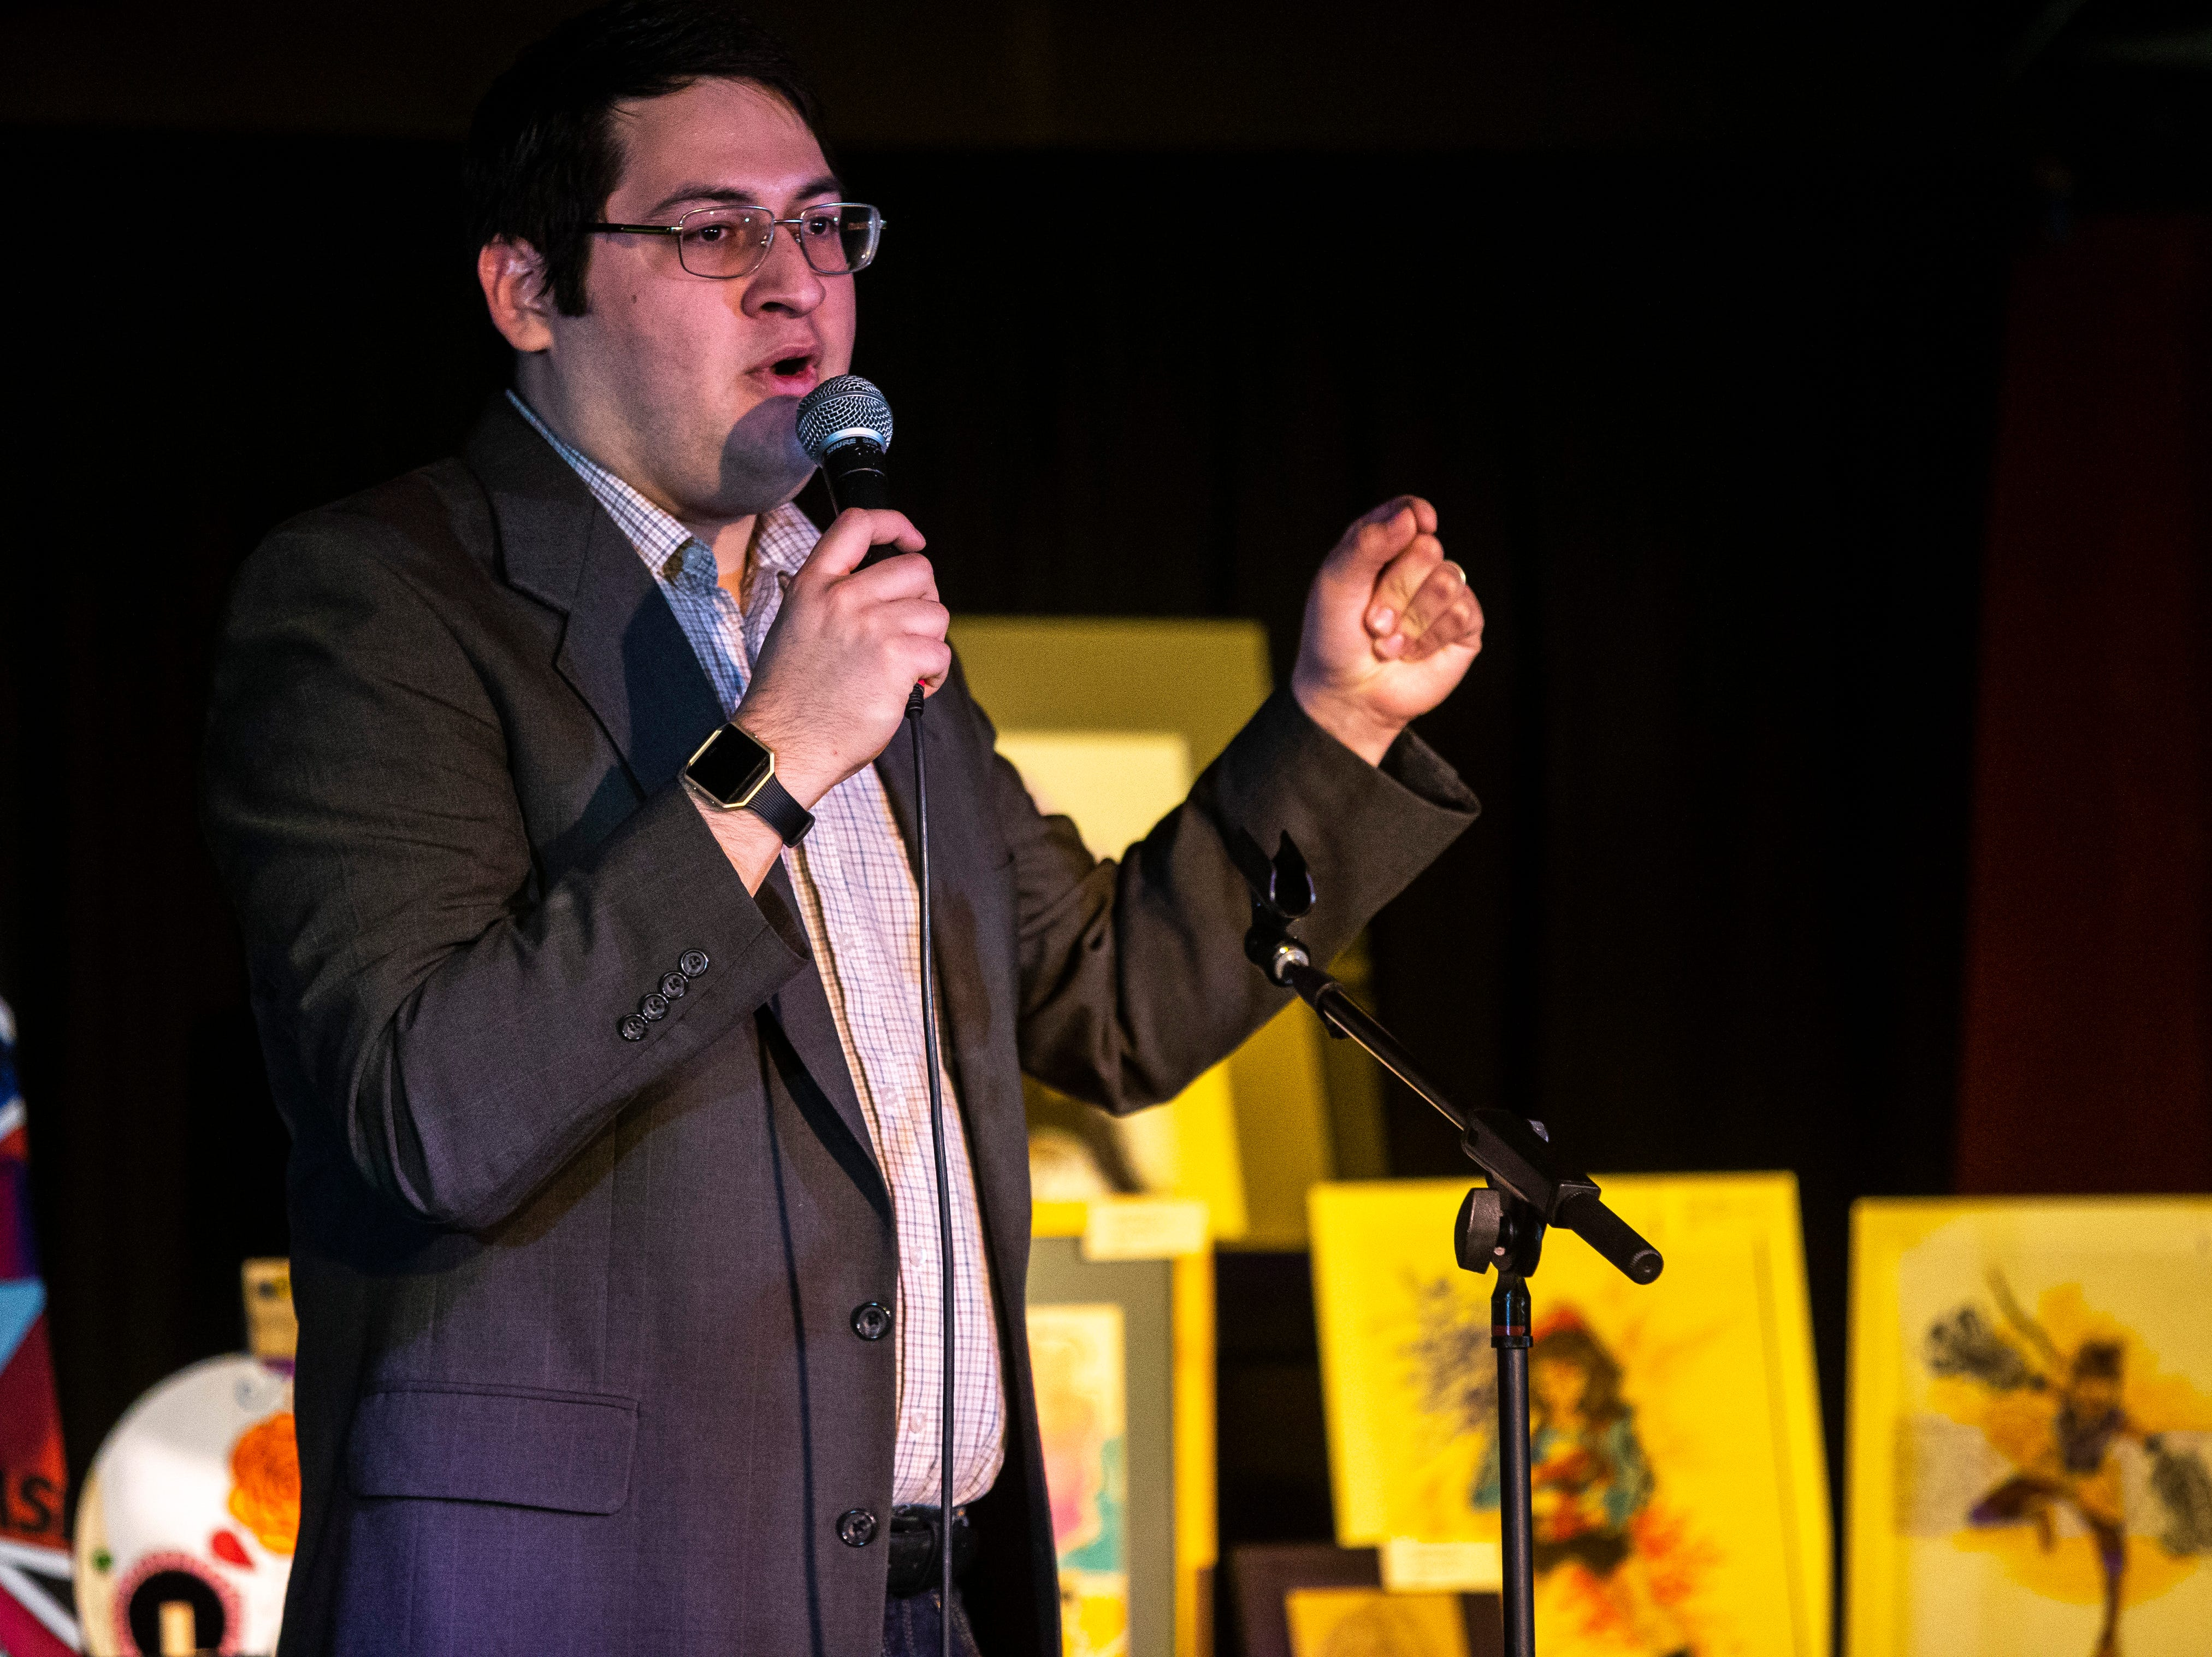 Jonathan Munoz, president of LULAC Council 308, speaks during a Lotería game night hosted by the council on Sunday, March 31, 2019, at The Mill in downtown Iowa City, Iowa.